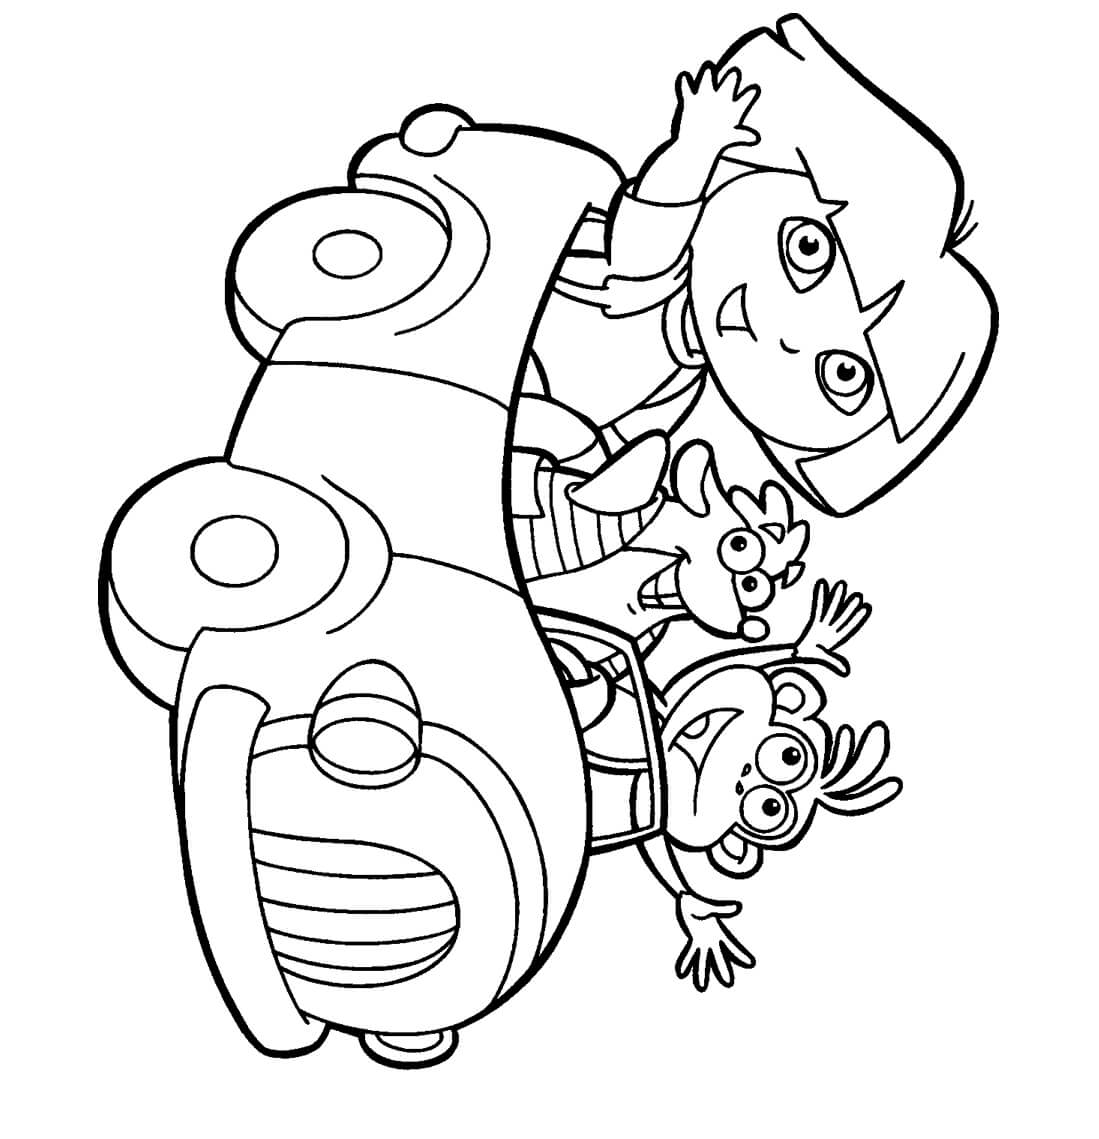 Happy New Year Coloring Pages For Toddlers